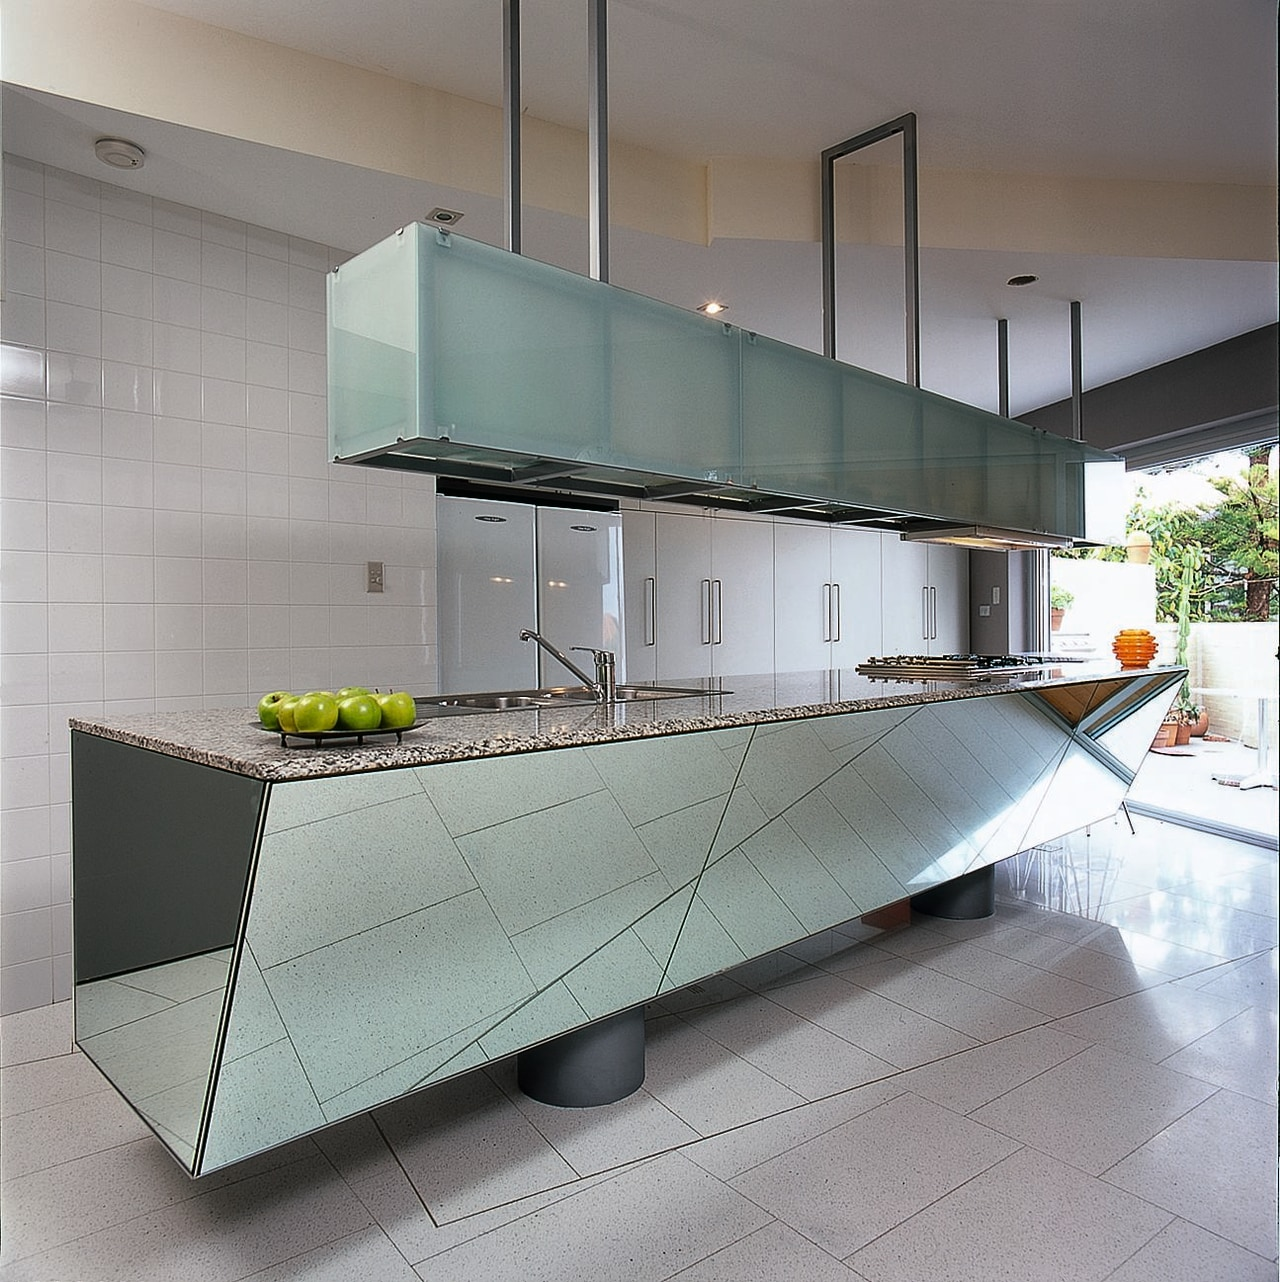 Rhomboid-shaped, mirror-clad island in this kitchen architecture, countertop, interior design, kitchen, product design, gray